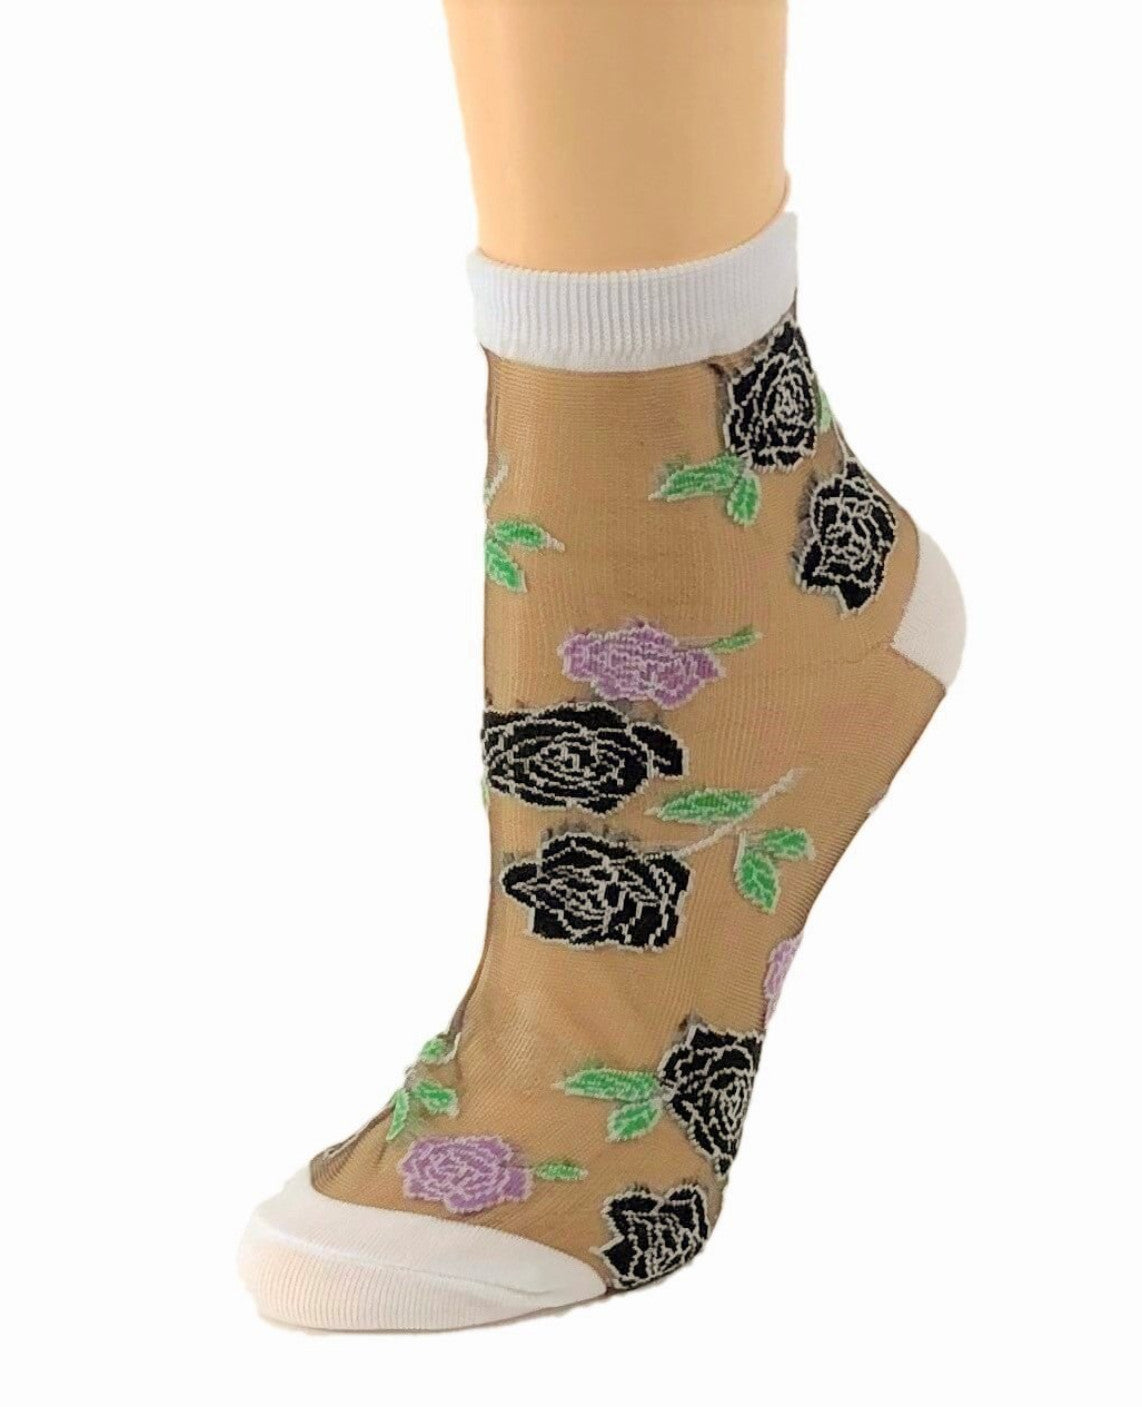 Sharp Black Roses Sheer Socks - Global Trendz Fashion®